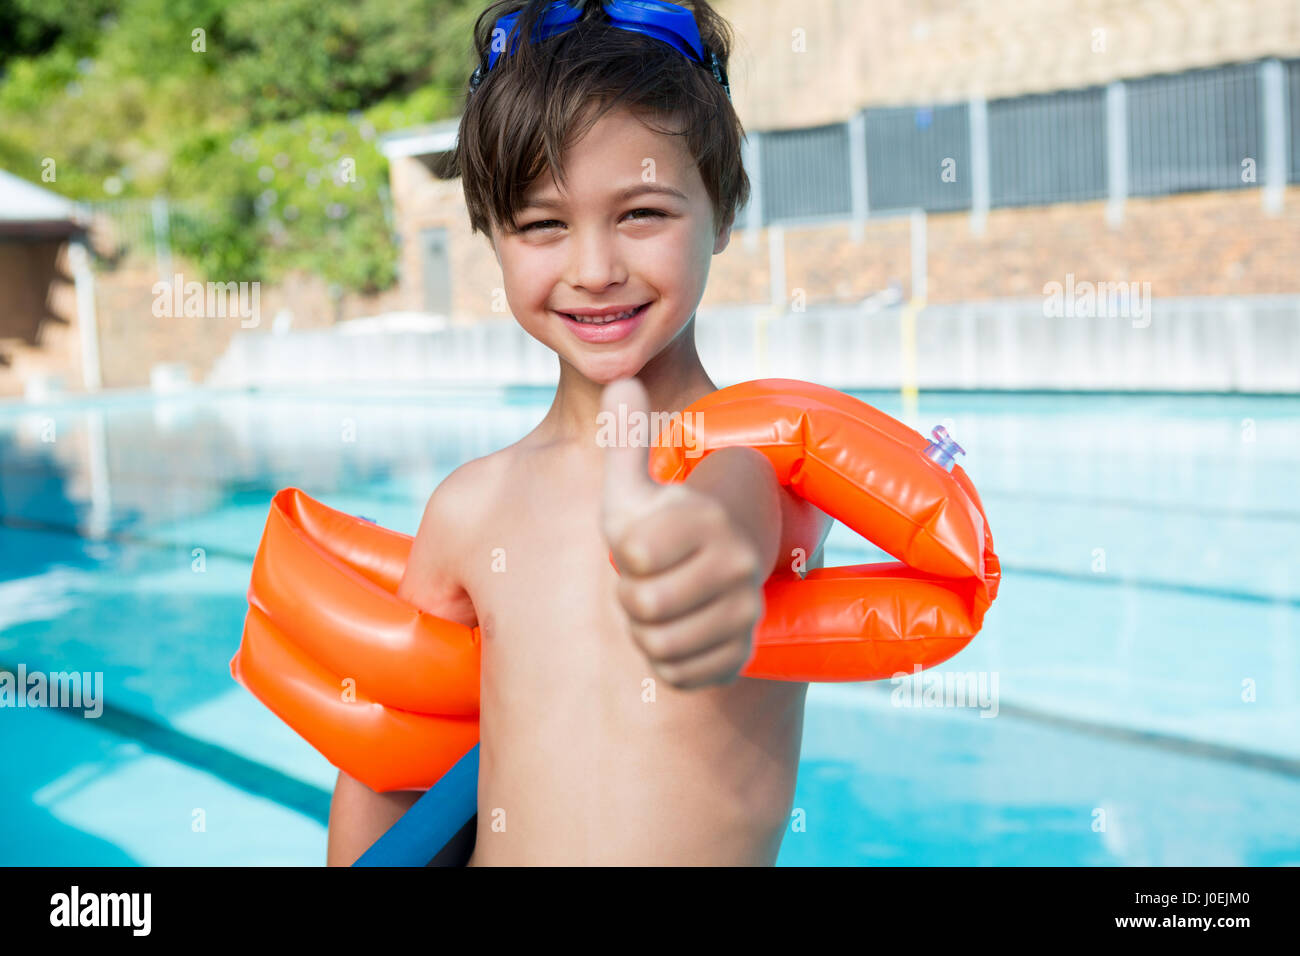 Young boy showing thumbs up at poolside in leisure center Stock Photo